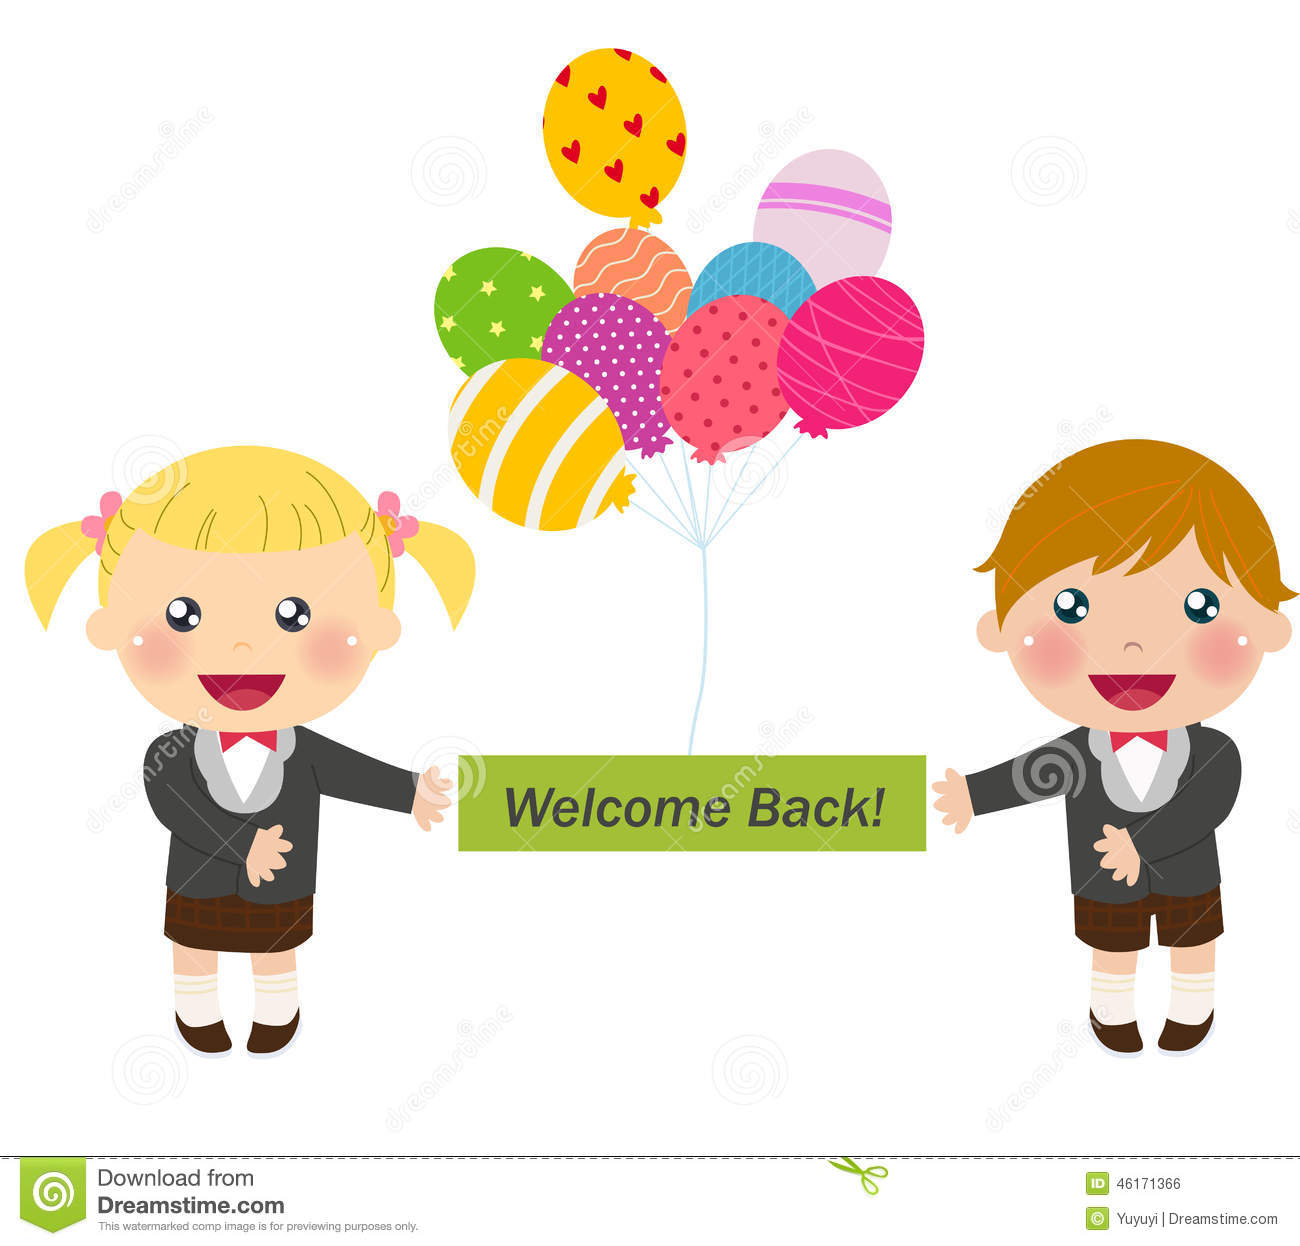 Welcome Back To School Stock Vector - Image: 46171366